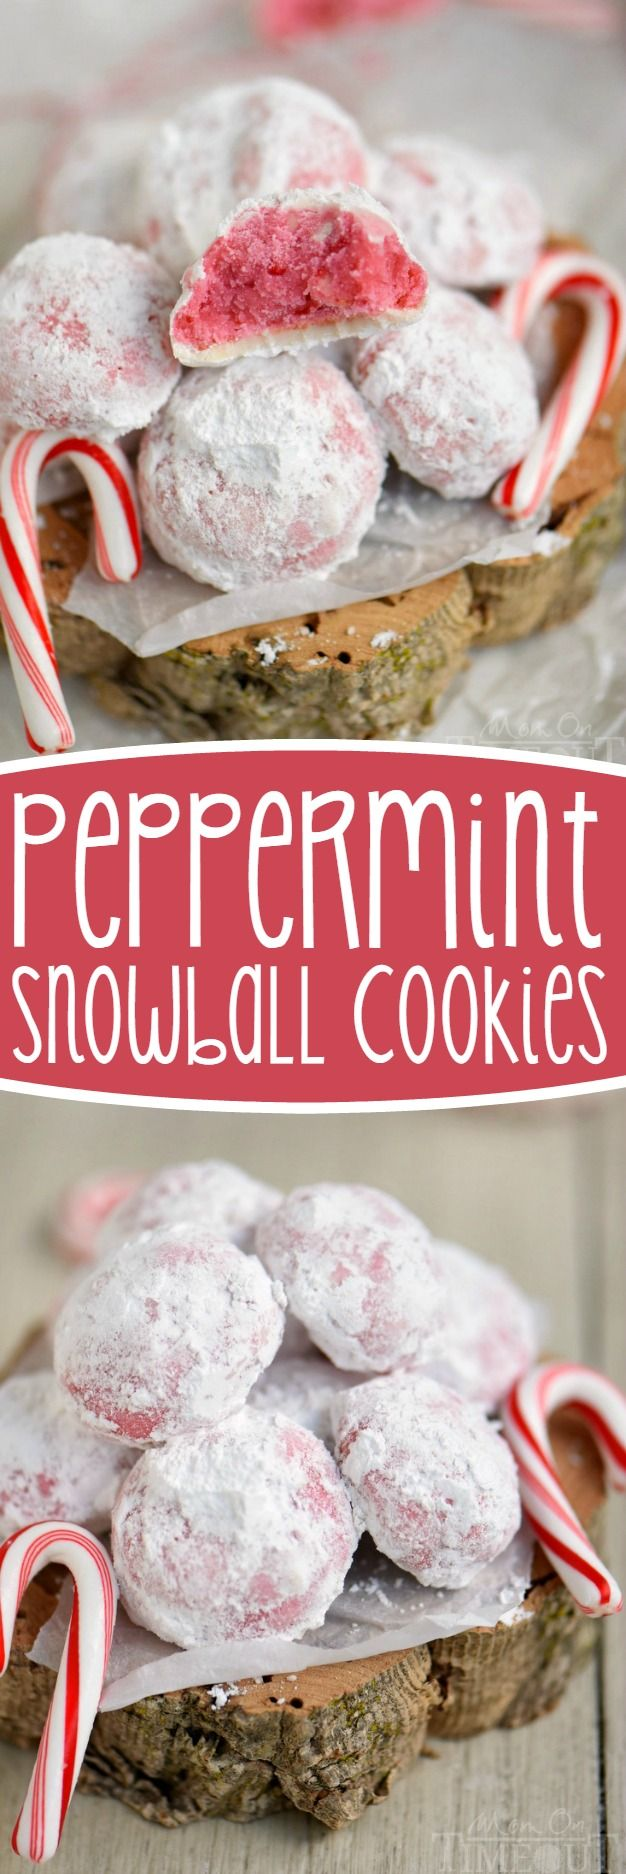 These Peppermint Snowball Cookies are everything a Christmas cookie should be! Easy, beautiful, and packed with flavor!